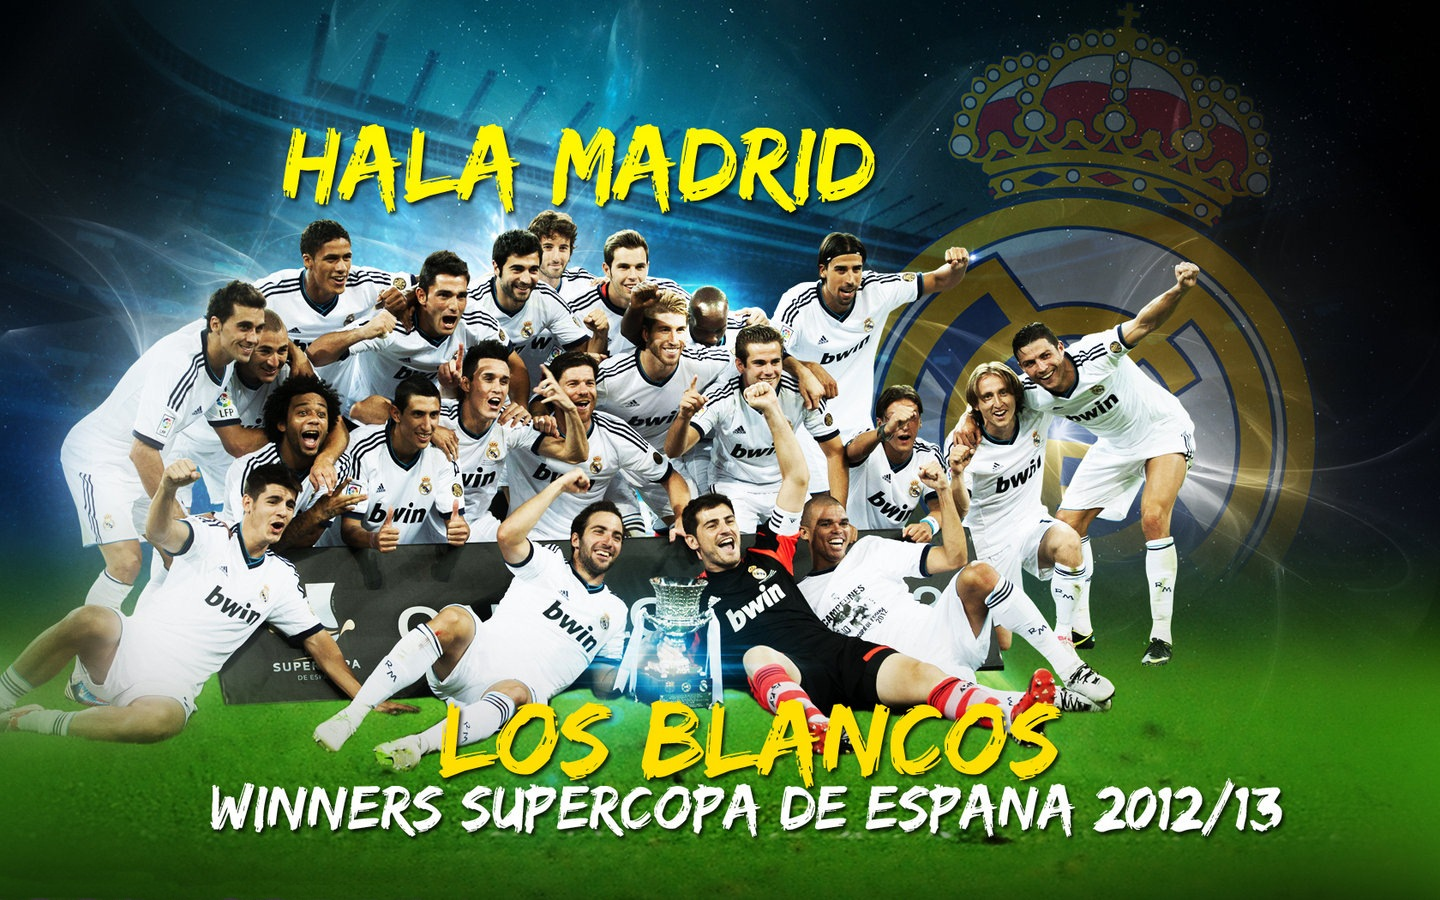 real - Real Madrid C.F. Wallpaper (32434190) - Fanpop fanclubsreal madrid